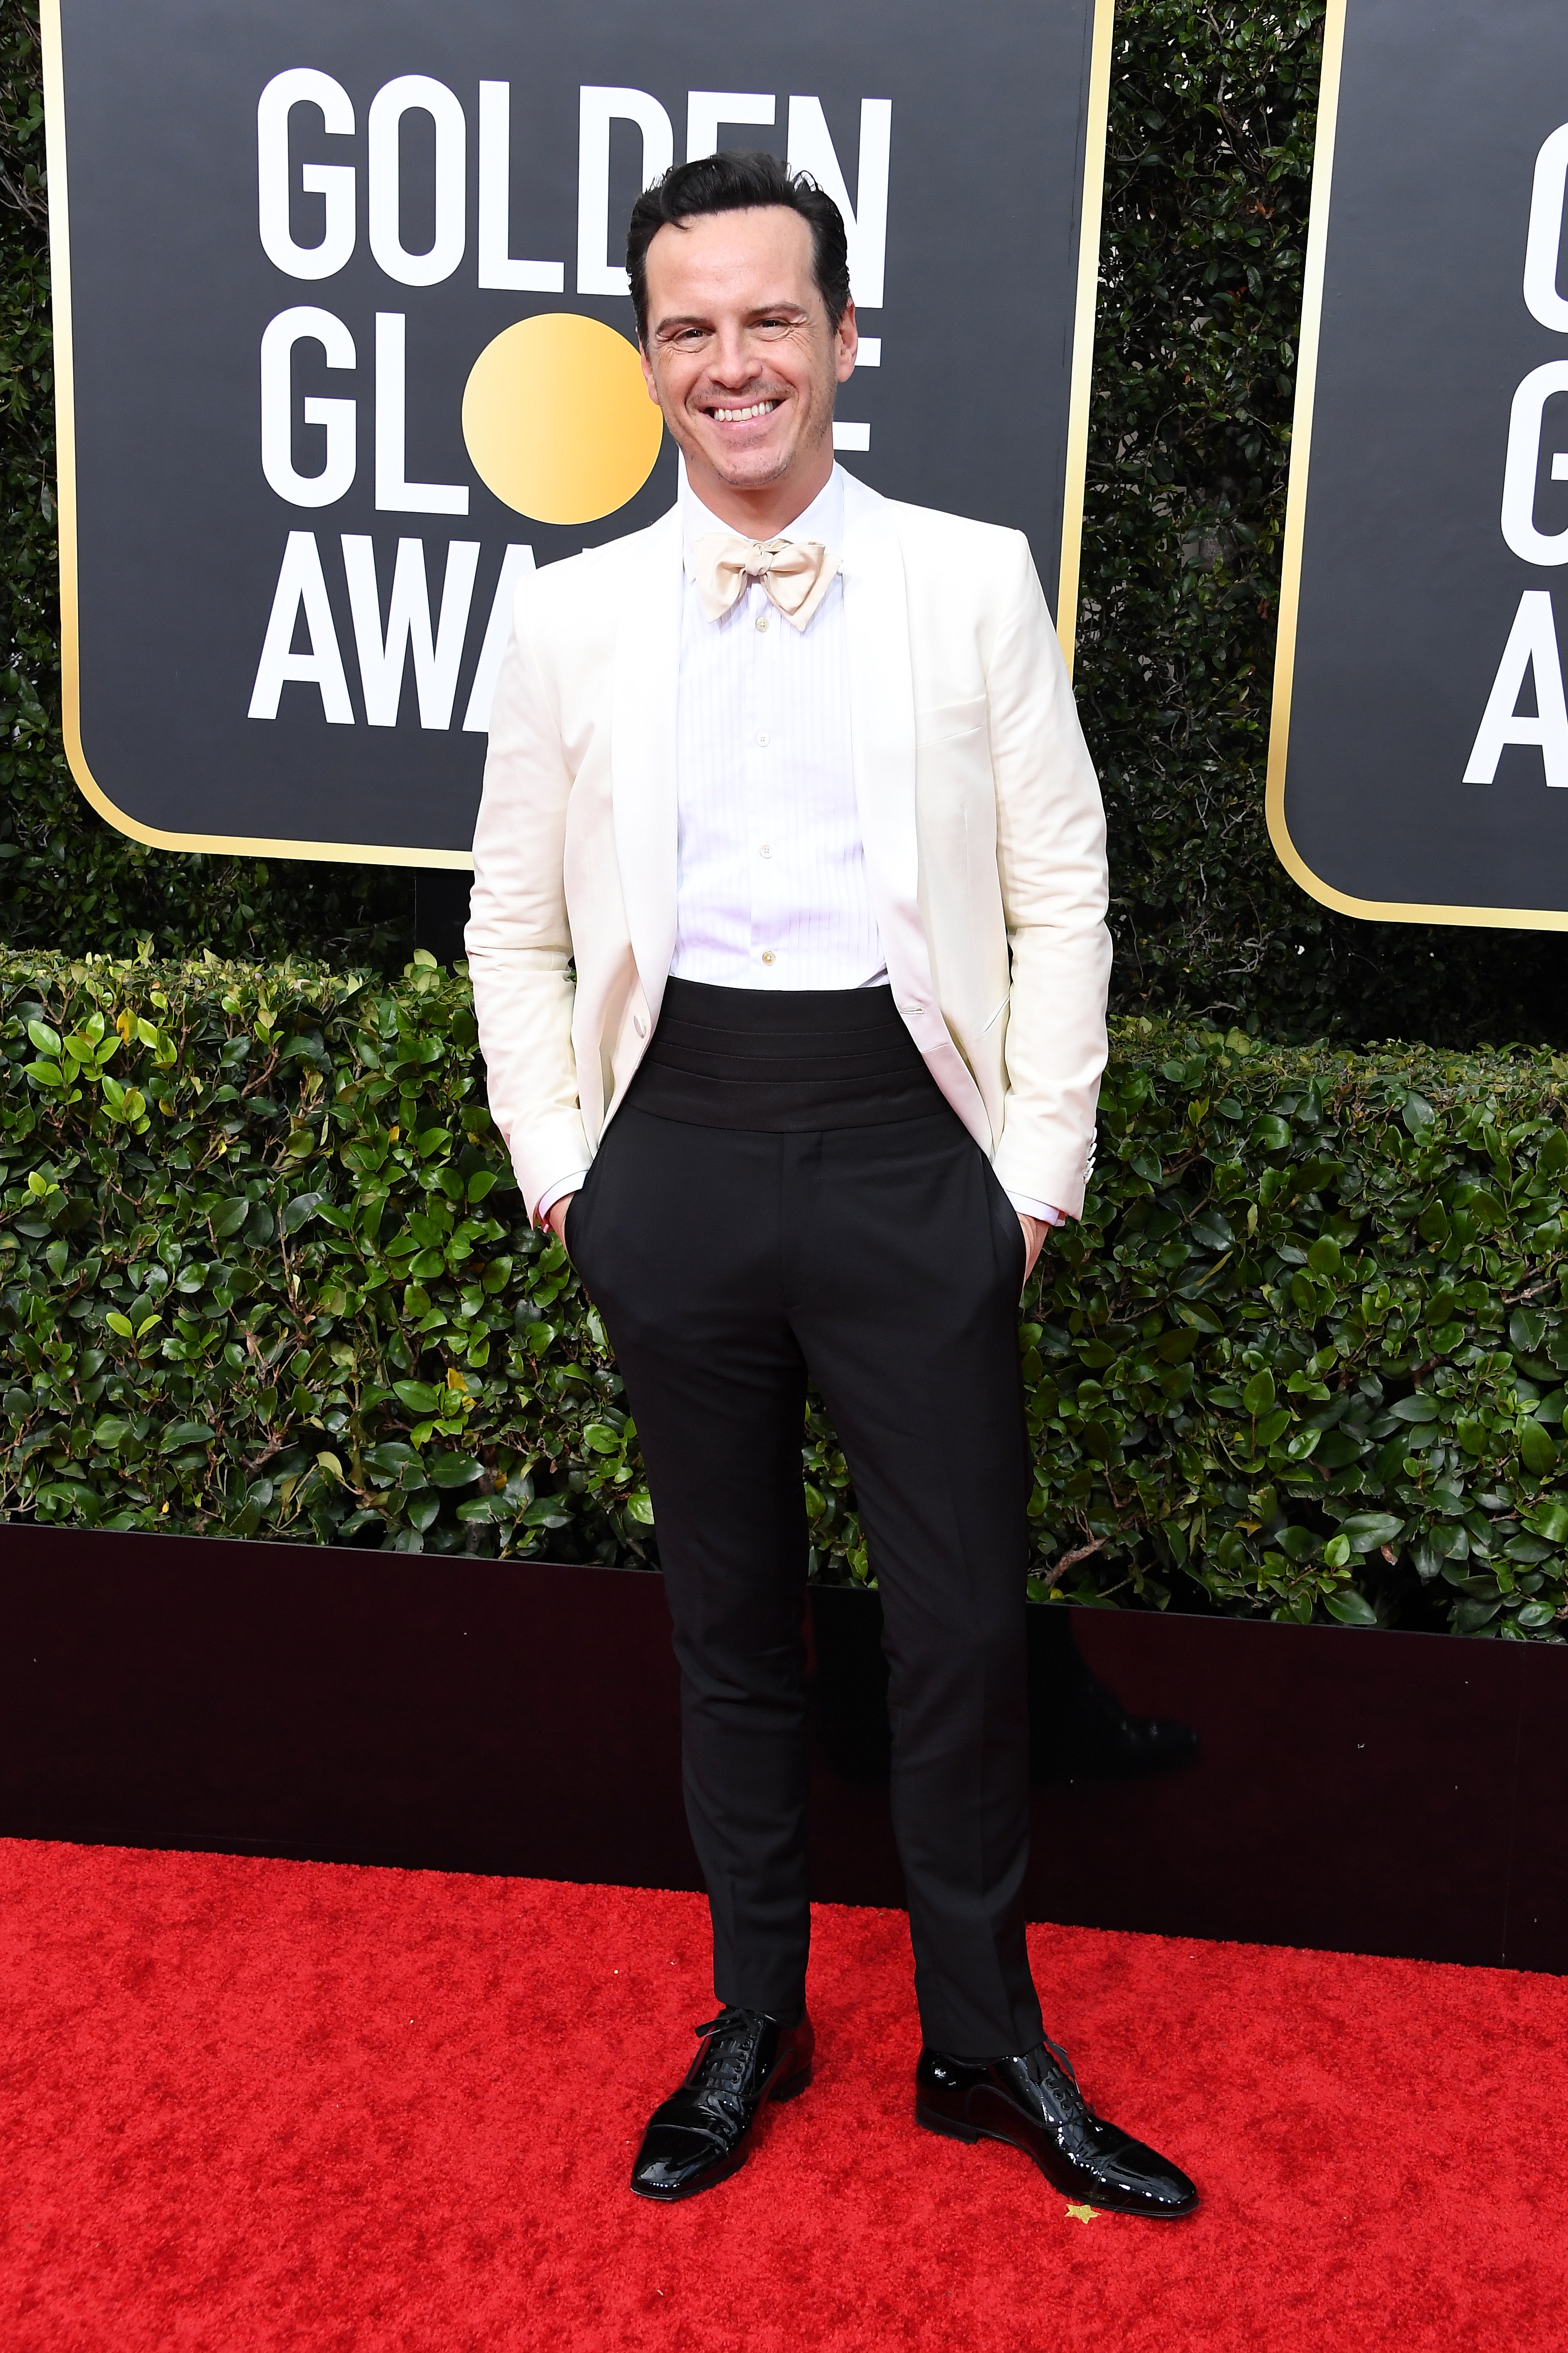 BEVERLY HILLS, CALIFORNIA - JANUARY 05: Andrew Scott attends the 77th Annual Golden Globe Awards at The Beverly Hilton Hotel on January 05, 2020 in Beverly Hills, California. (Photo by Steve Granitz/WireImage)